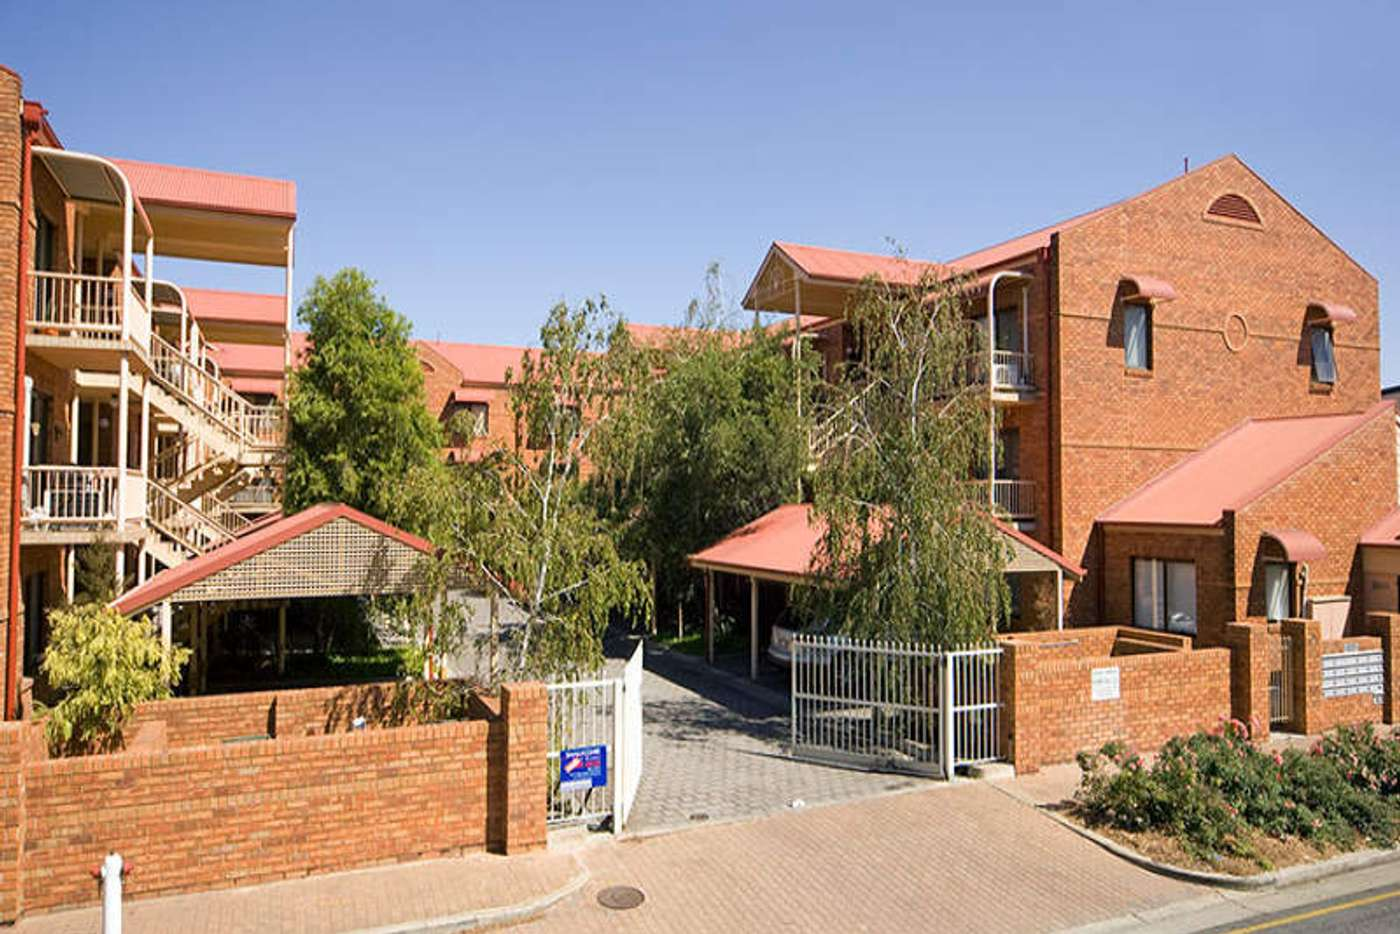 Main view of Homely unit listing, 16/11 Winifred Street, Adelaide SA 5000